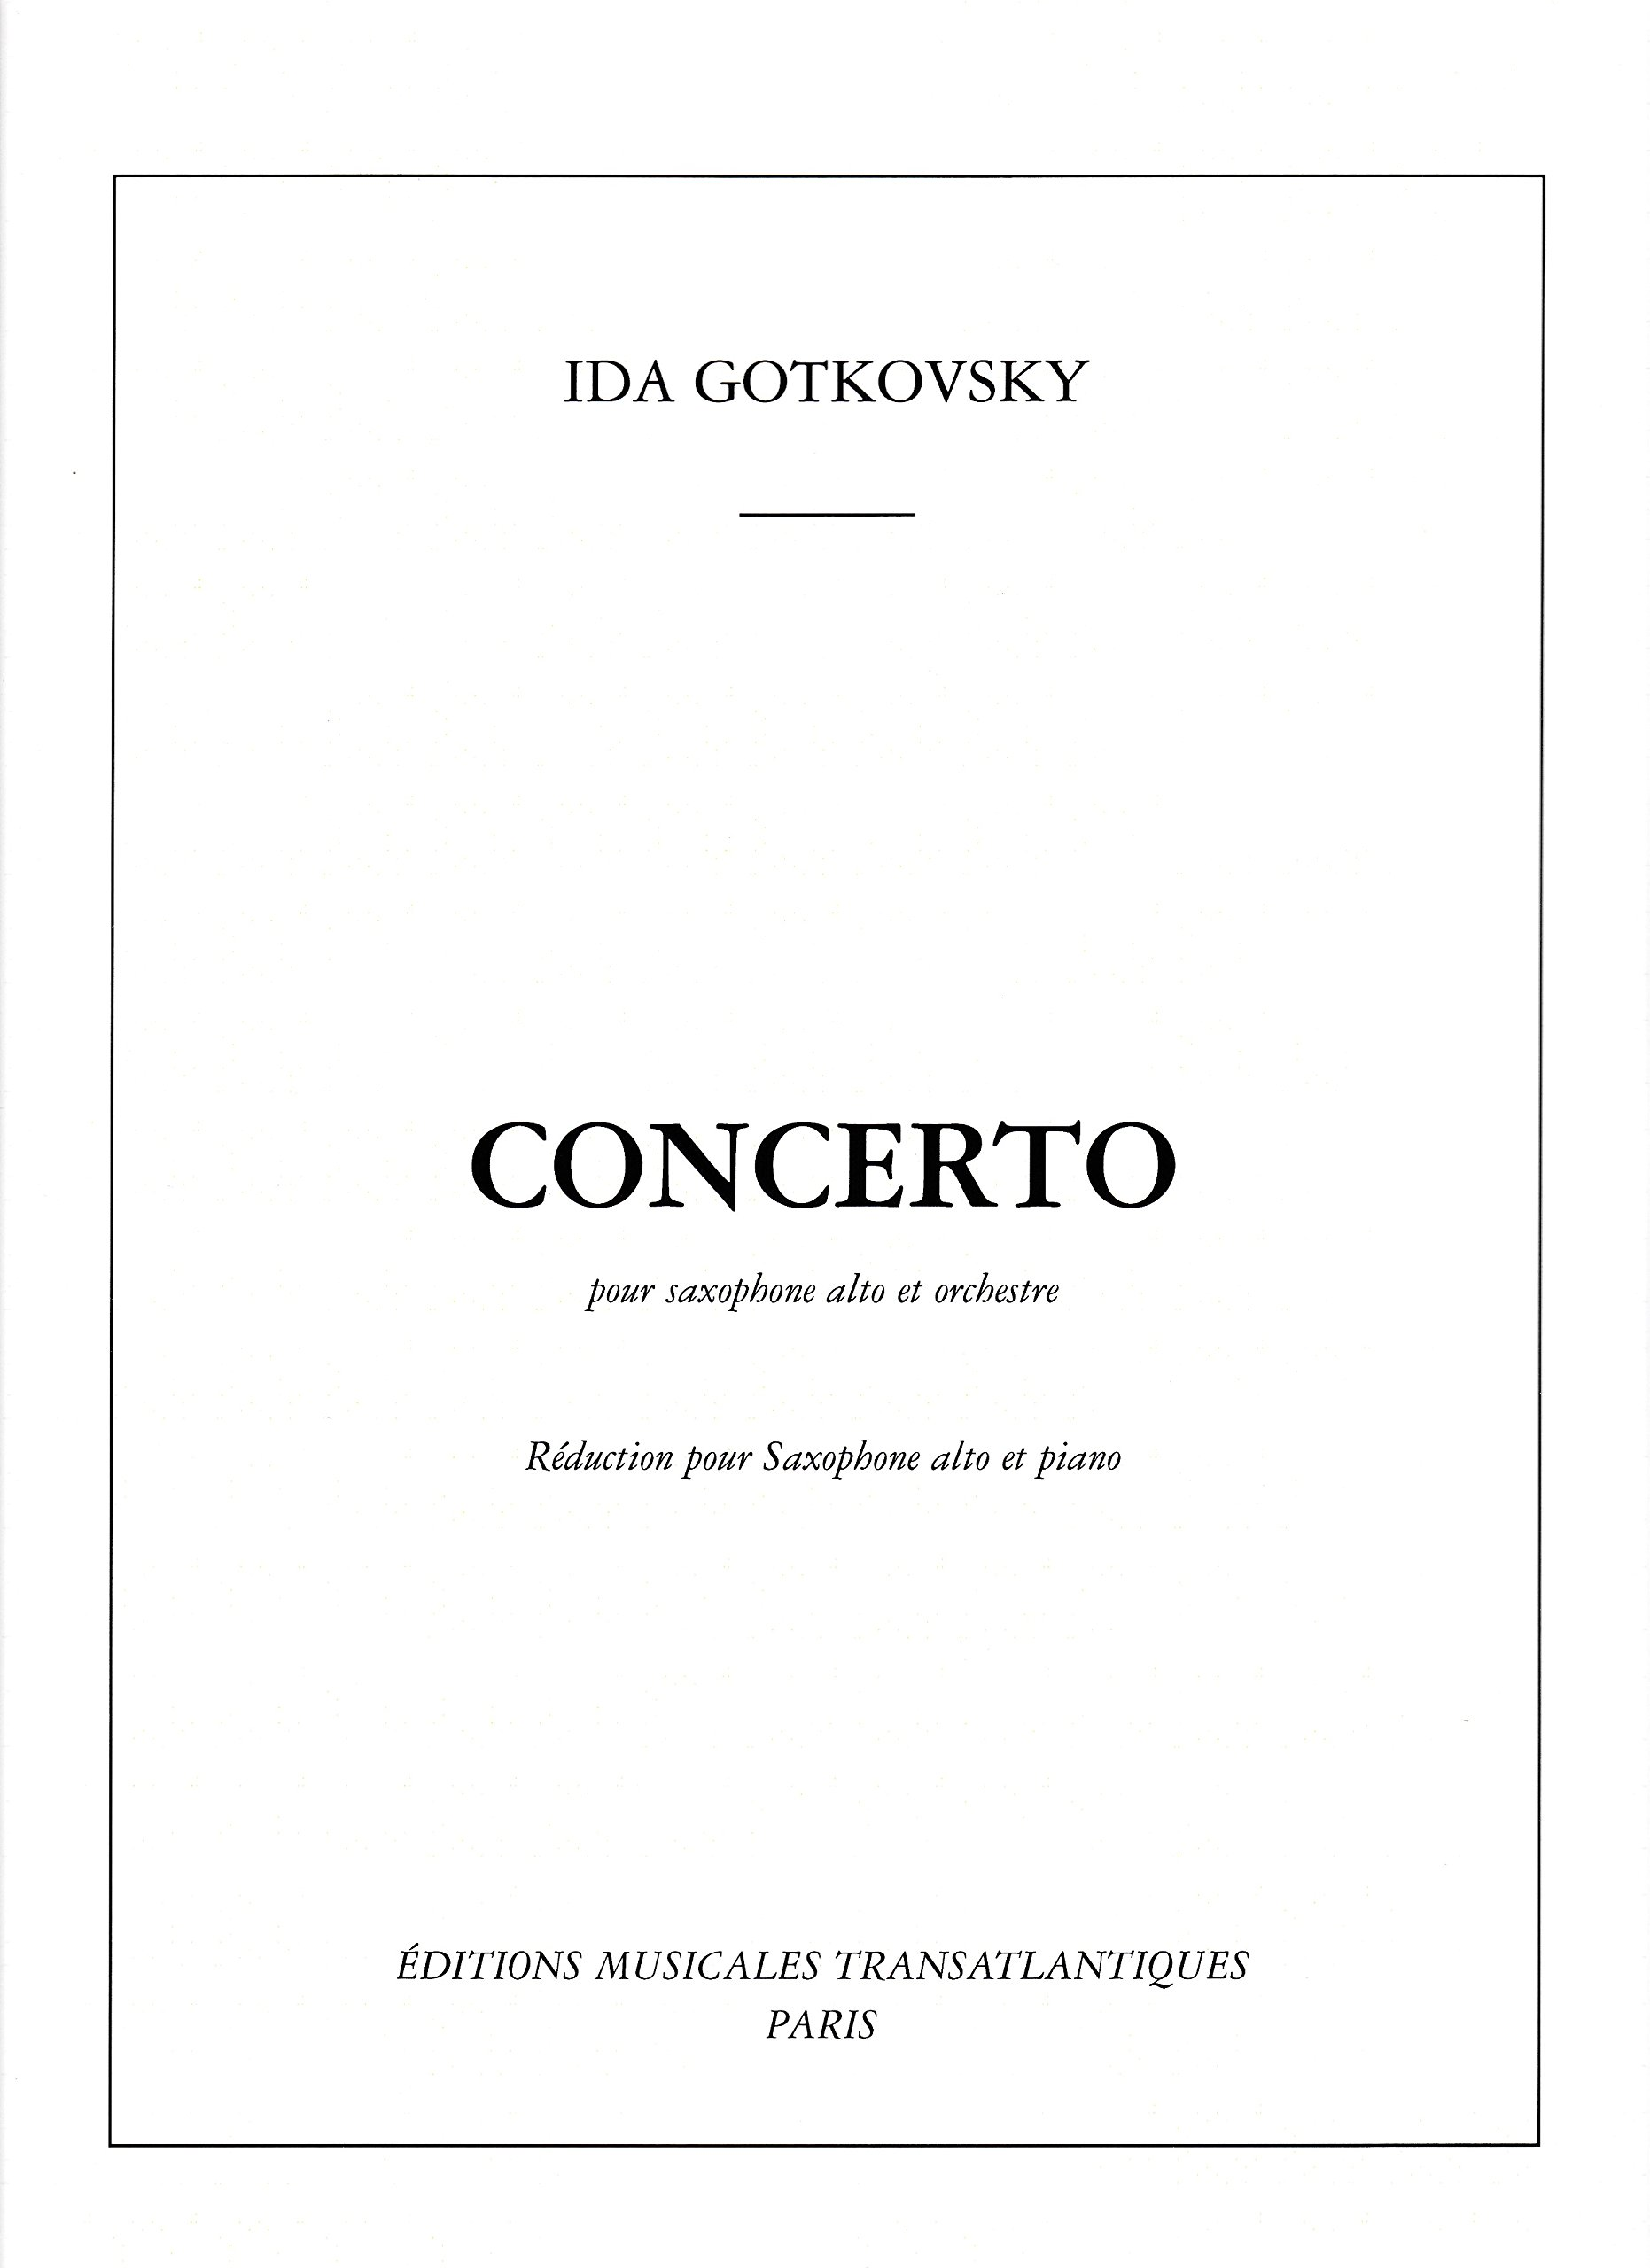 Concerto for Alto Saxophone and Piano by Ida Gotkovsky